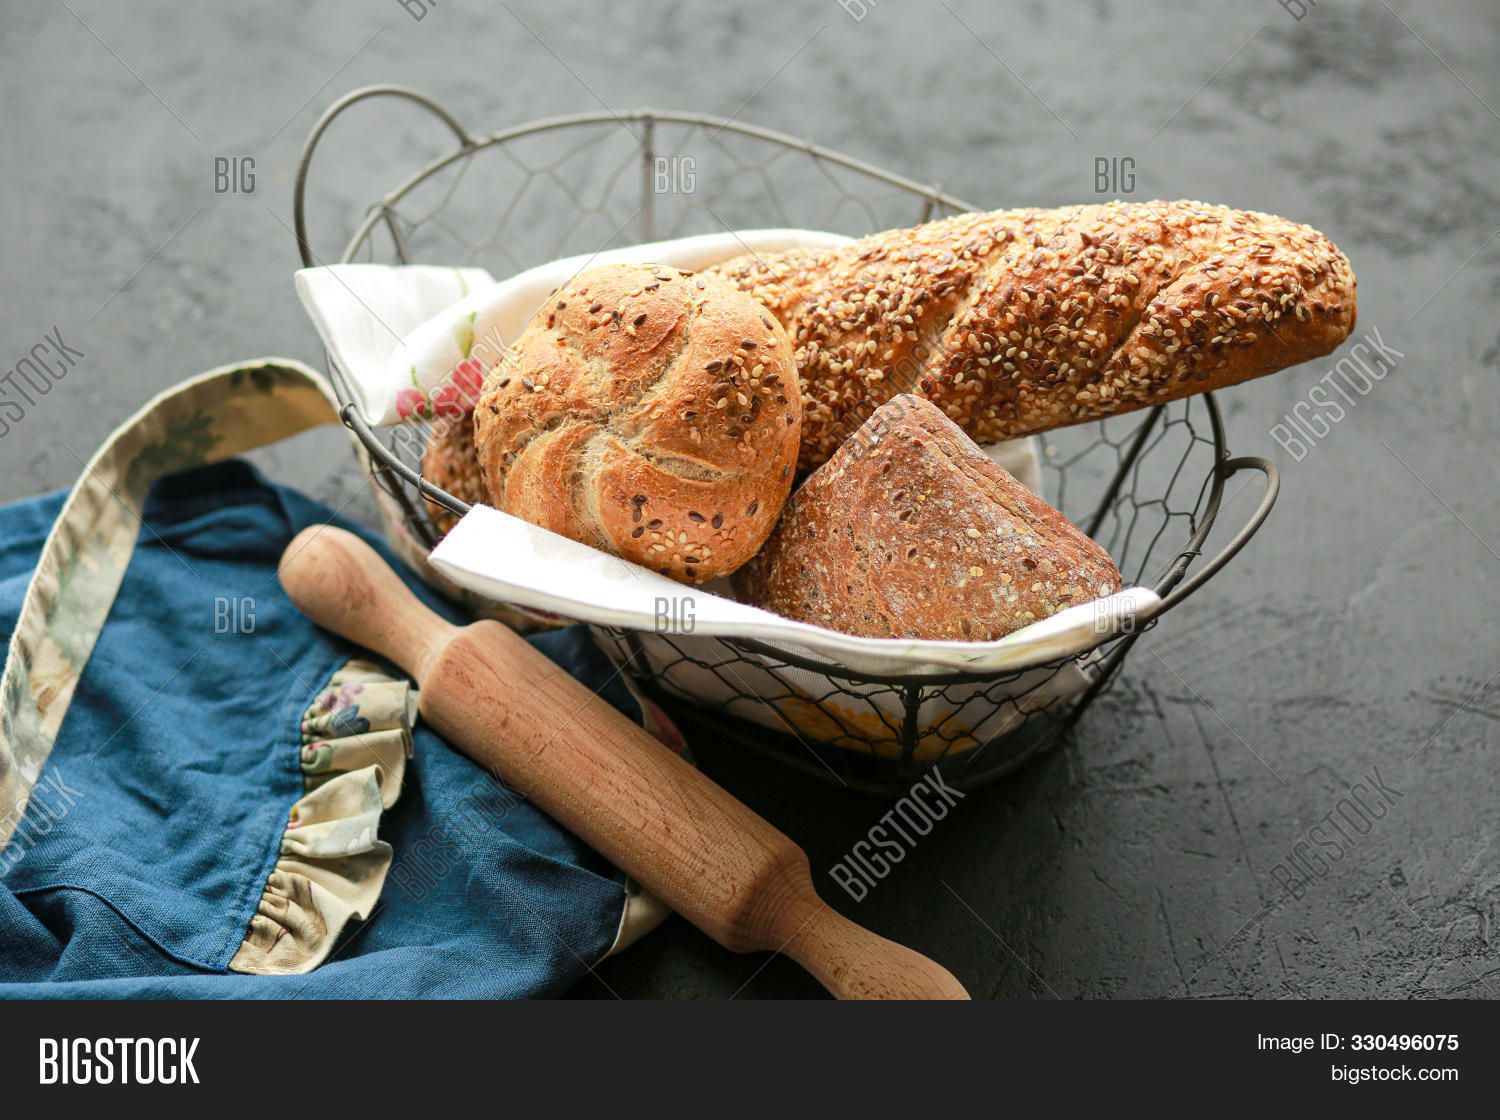 apron,background,baguette,baked,bakery,basket,black,board,bread,buckwheat,cook,cooking,cuisine,delicious,design,flour,food,for,fresh,grain,health,homemade,ingredient,kitchen,loaf,natural,notebook,nutrition,organic,pastry,pin,place,raw,rolling,rustic,sandwich,seeds,sieve,snack,space,spikelets,sunflower,text,texture